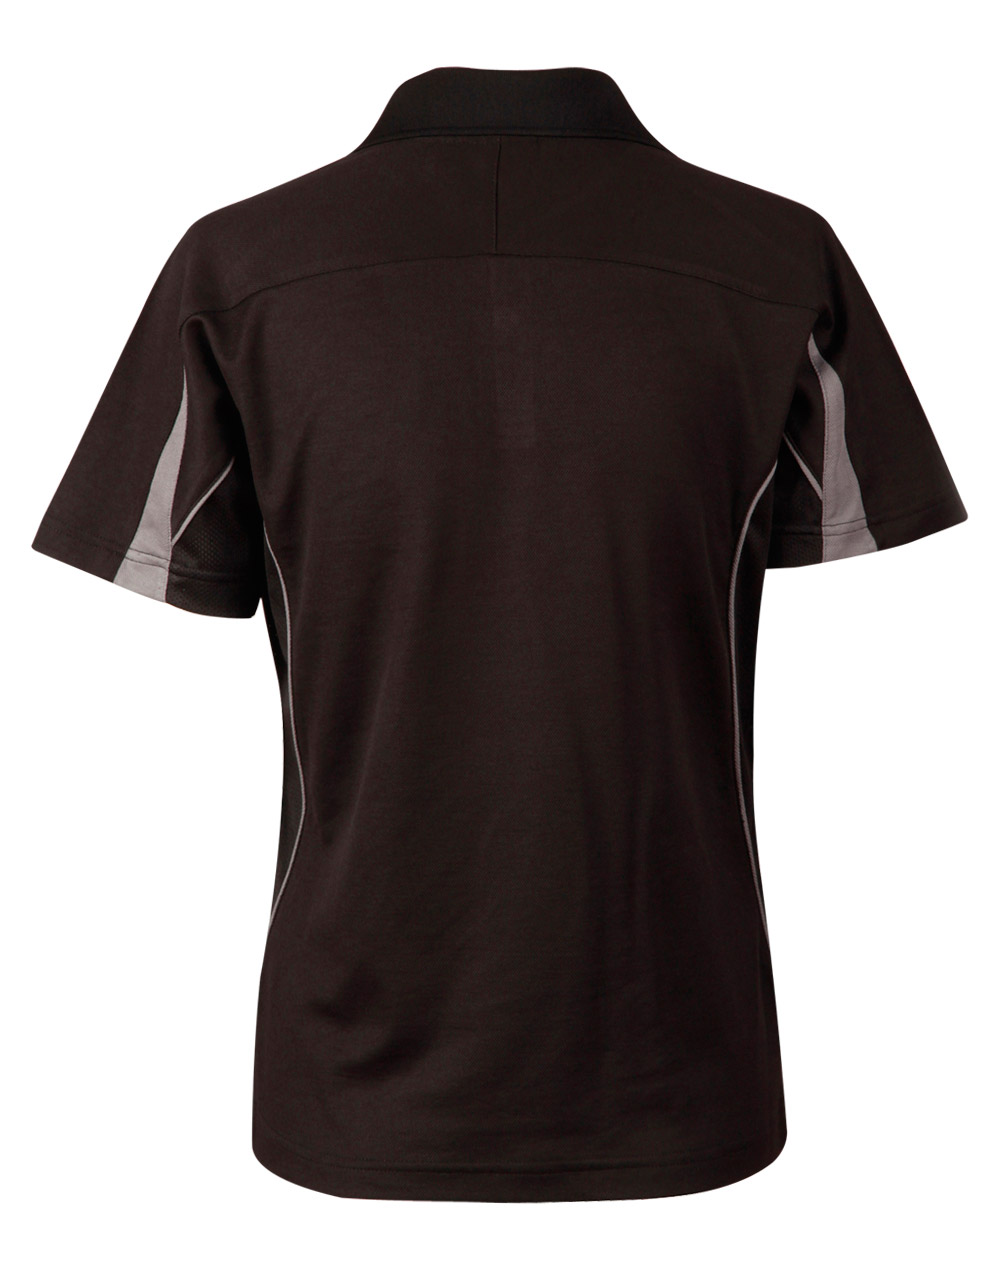 https://s3-ap-southeast-1.amazonaws.com/ws-imgs/POLOSHIRTS/PS54_BlackAsh_Back.jpg